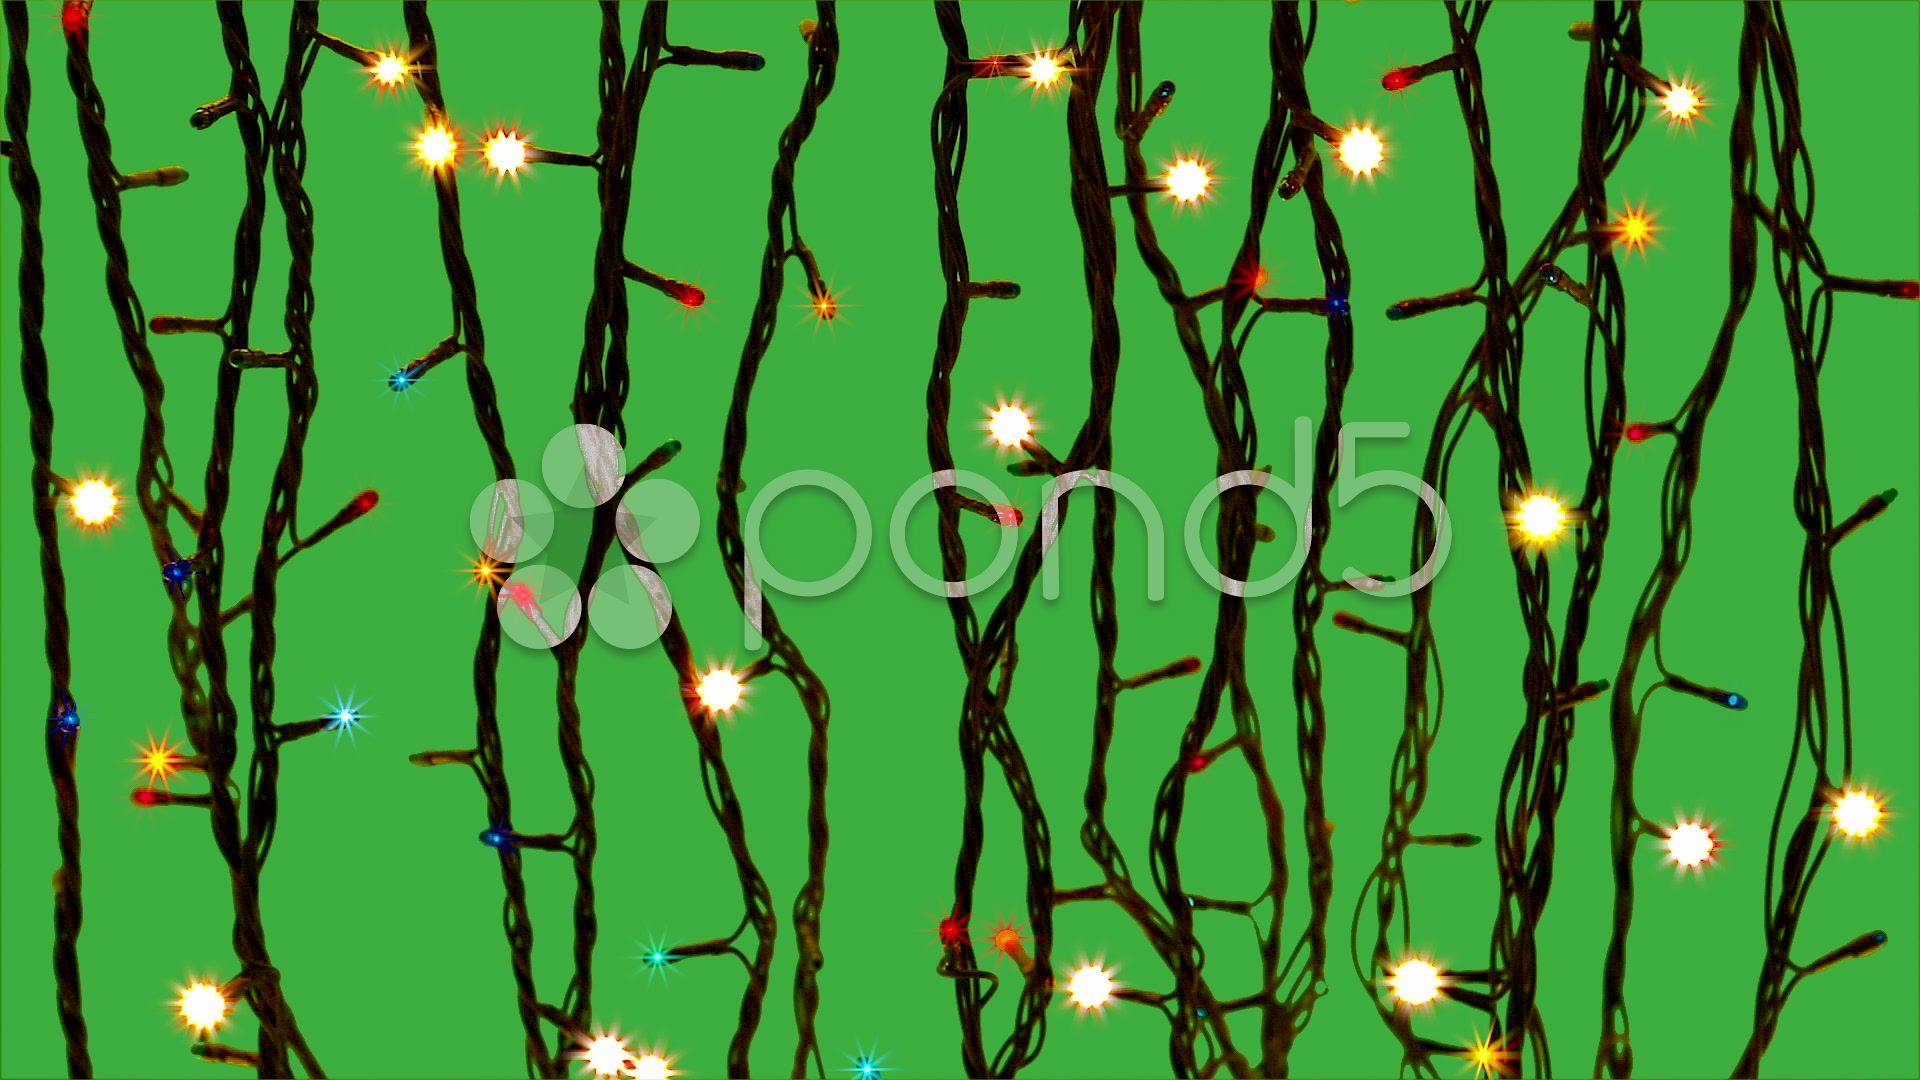 Ufo Sightings Christmas 2020 Electric garland Christmas. new year green screen Stock Footage